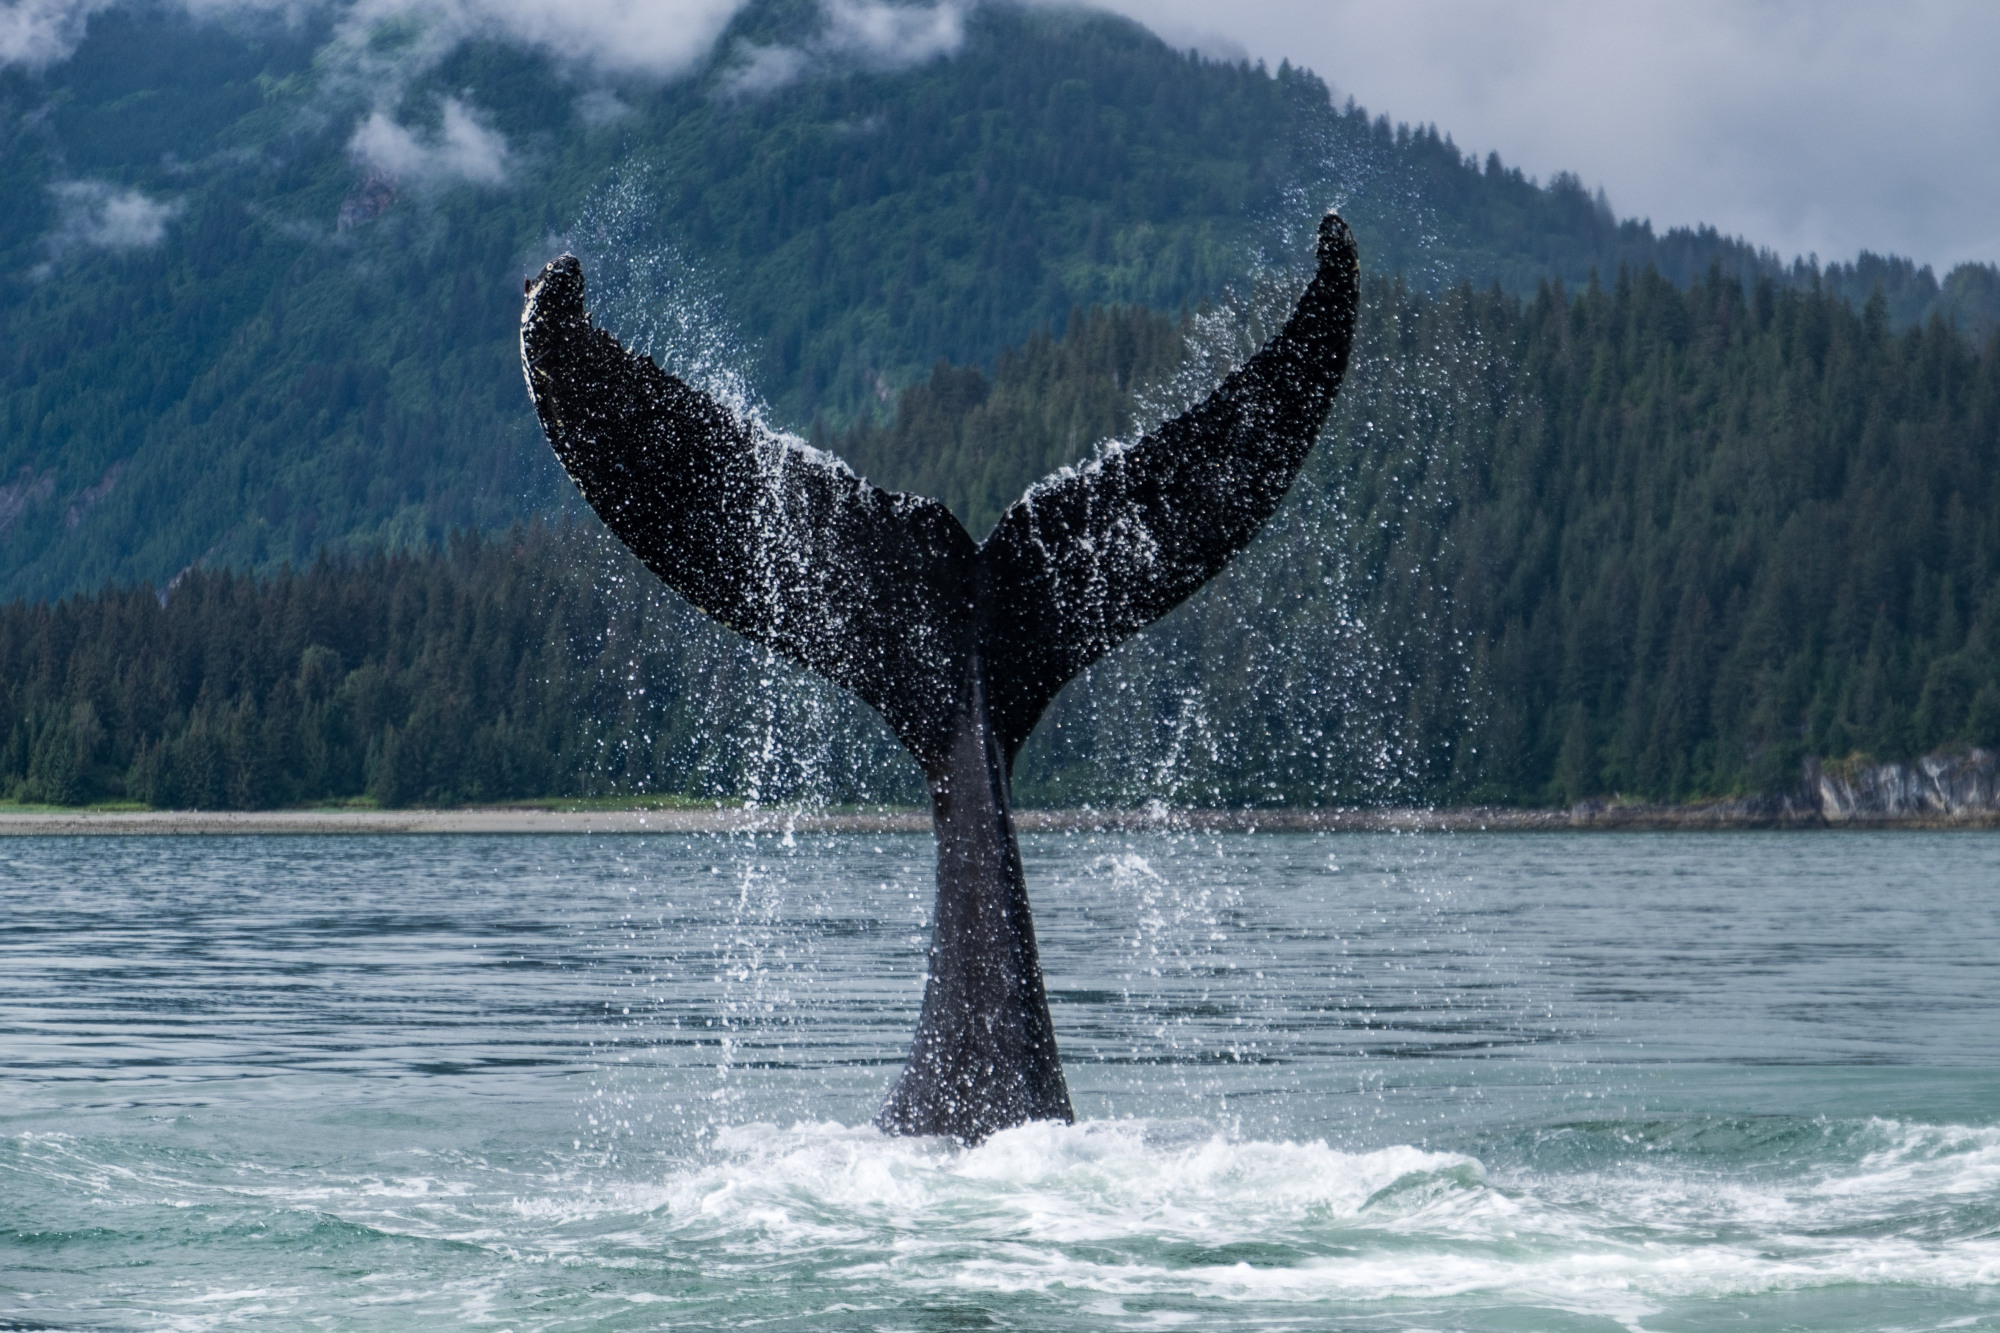 Telling tails: A humpback whale shows its fluke off the Alaska coast. | GETTY IMAGES